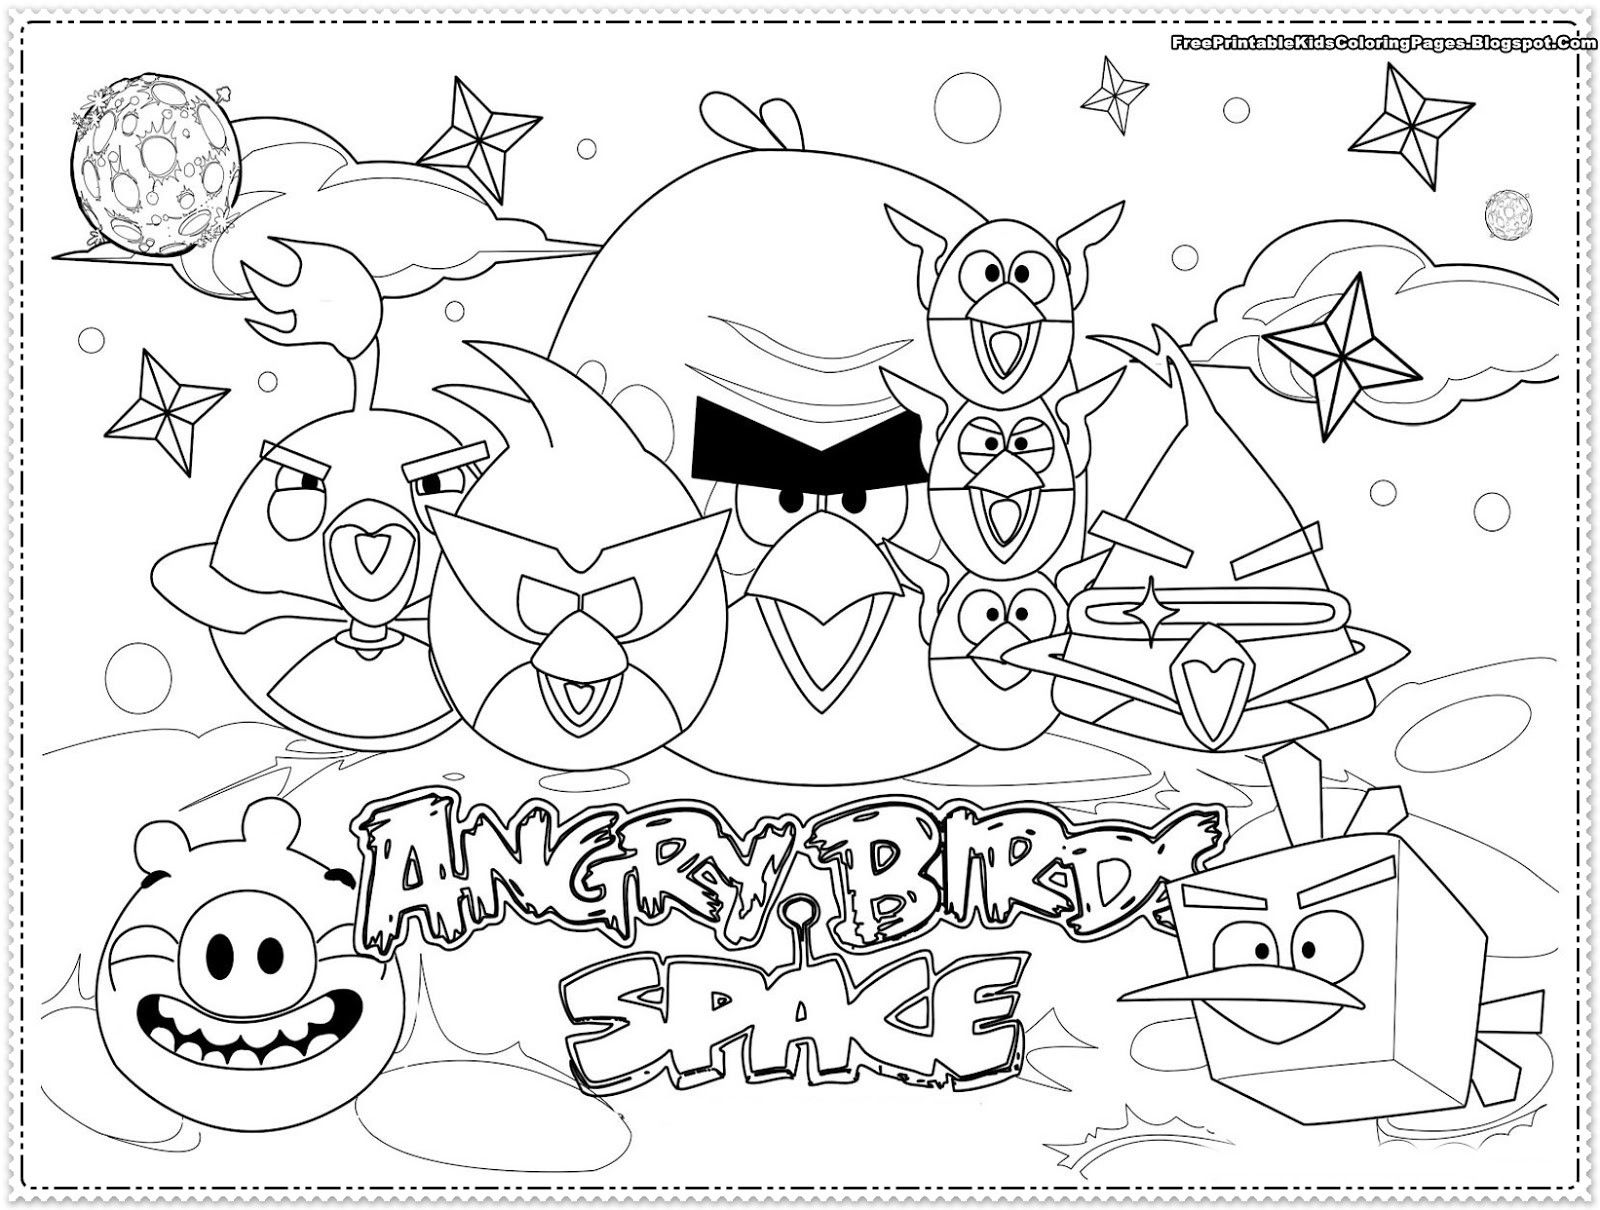 Angry Birds Coloring Pages Space From The Thousands Of Images On Line With Regards To Angry Bird Bird Coloring Pages Space Coloring Pages Free Coloring Pages [ 1210 x 1600 Pixel ]